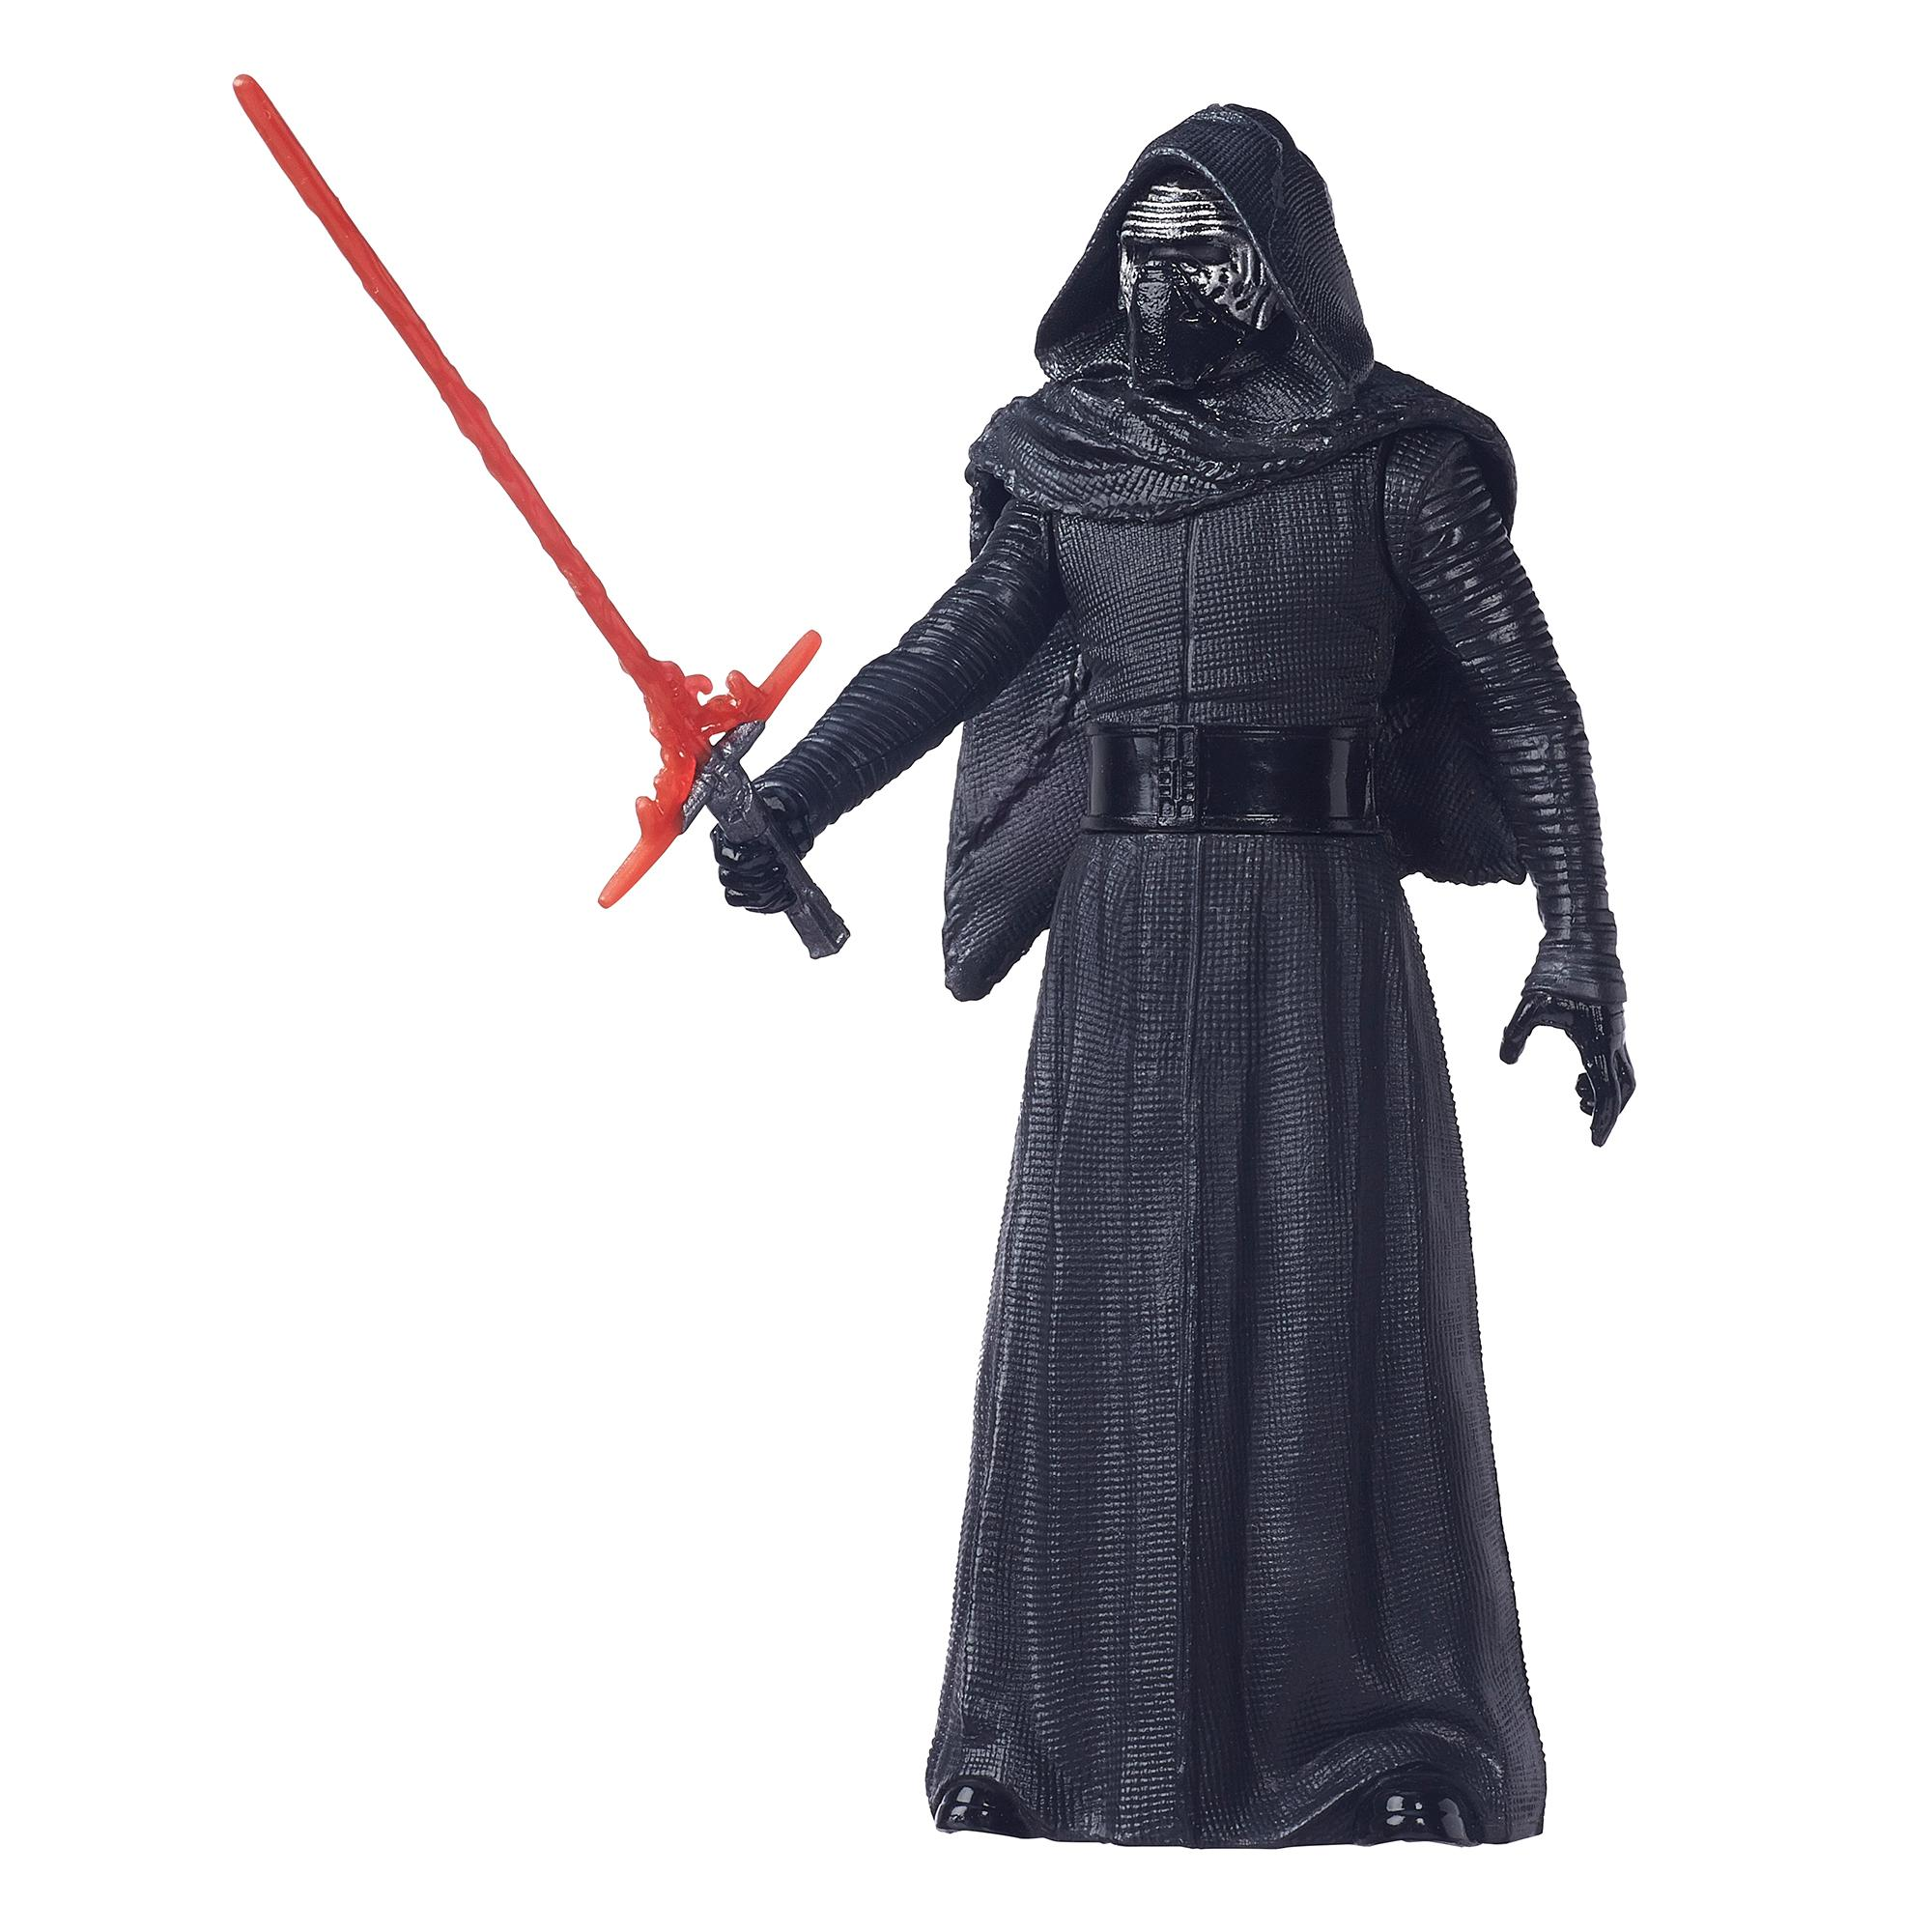 Star Wars The Force Awakens 6-Inch Kylo Ren